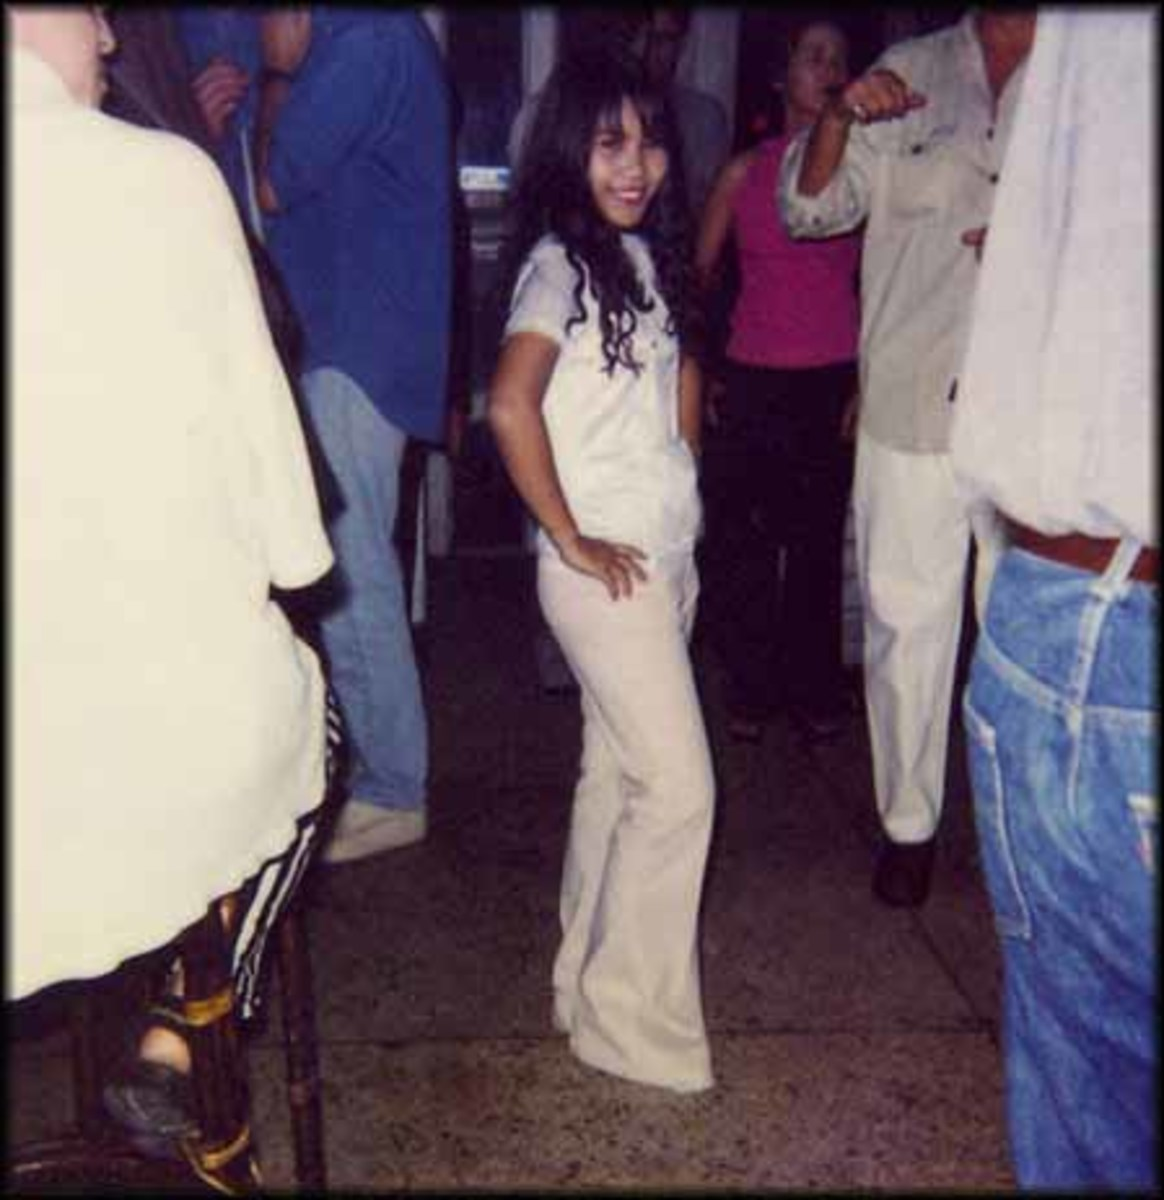 Loon, aged 15, waits for customers in a Bangkok nightclub two years after selling her virginity for a few hundred dollars